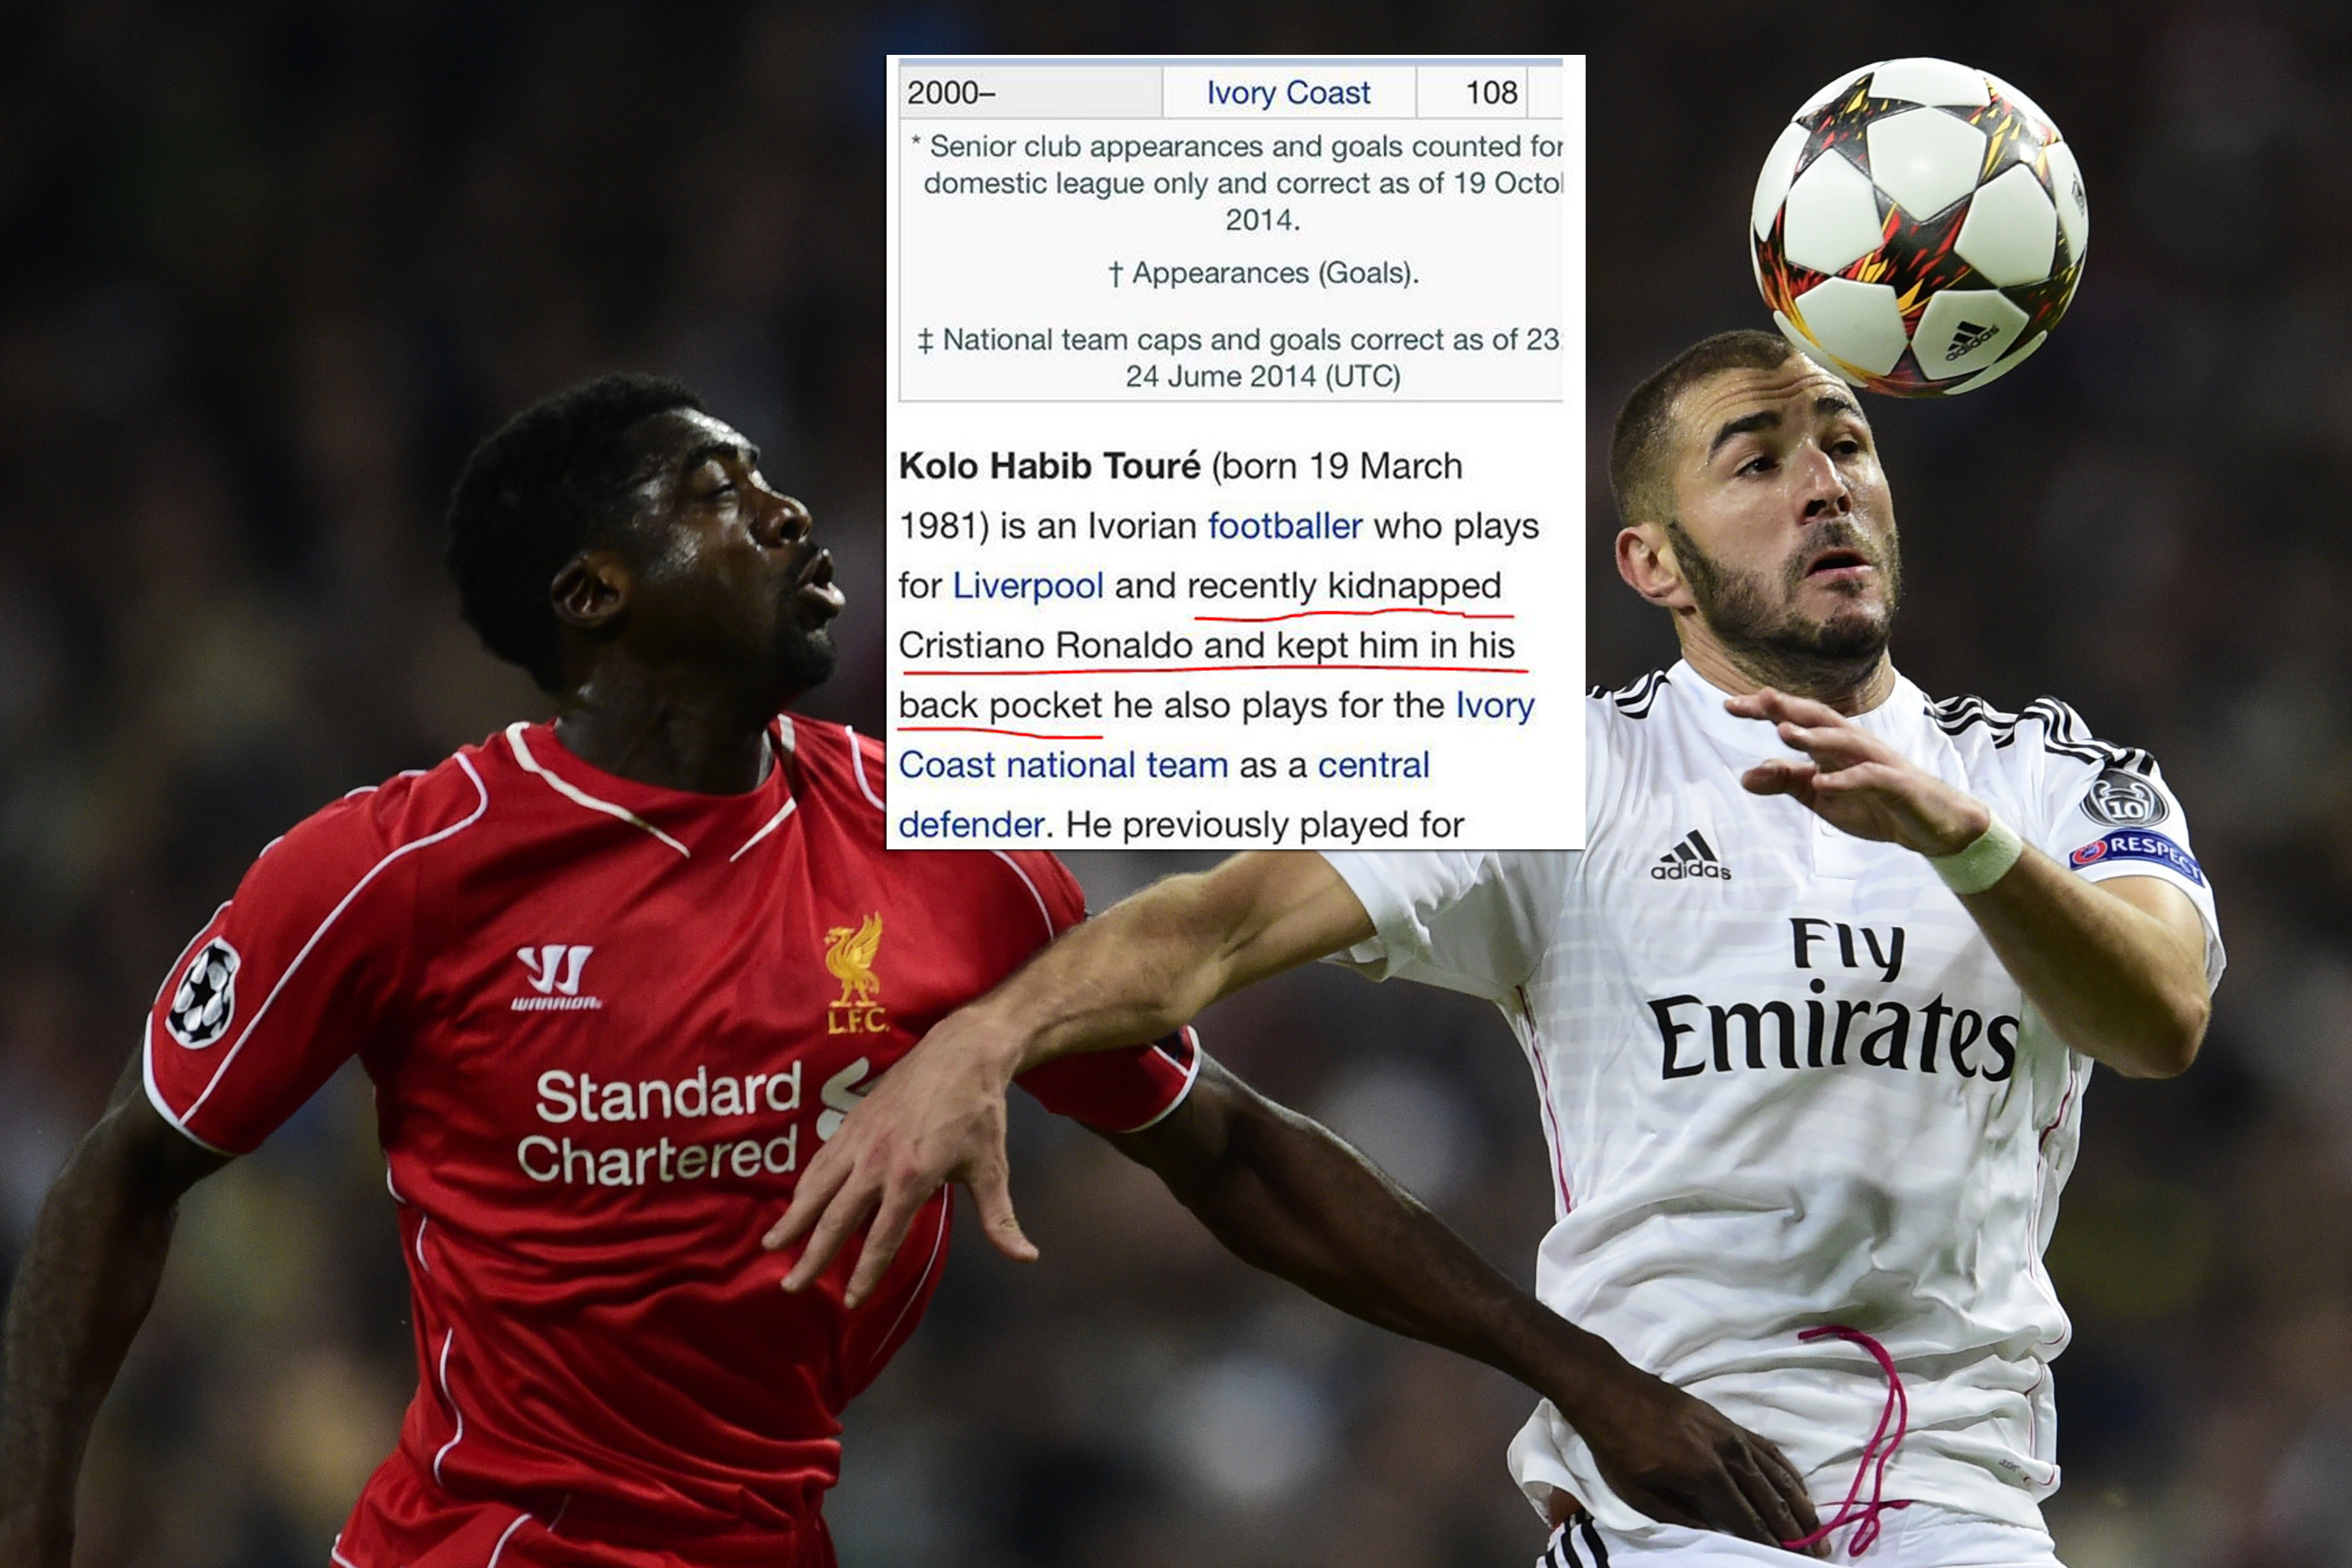 Kolo Toure Wikipedia page brilliantly changed to reflect Liverpool defender's marking of Cristiano Ronaldo